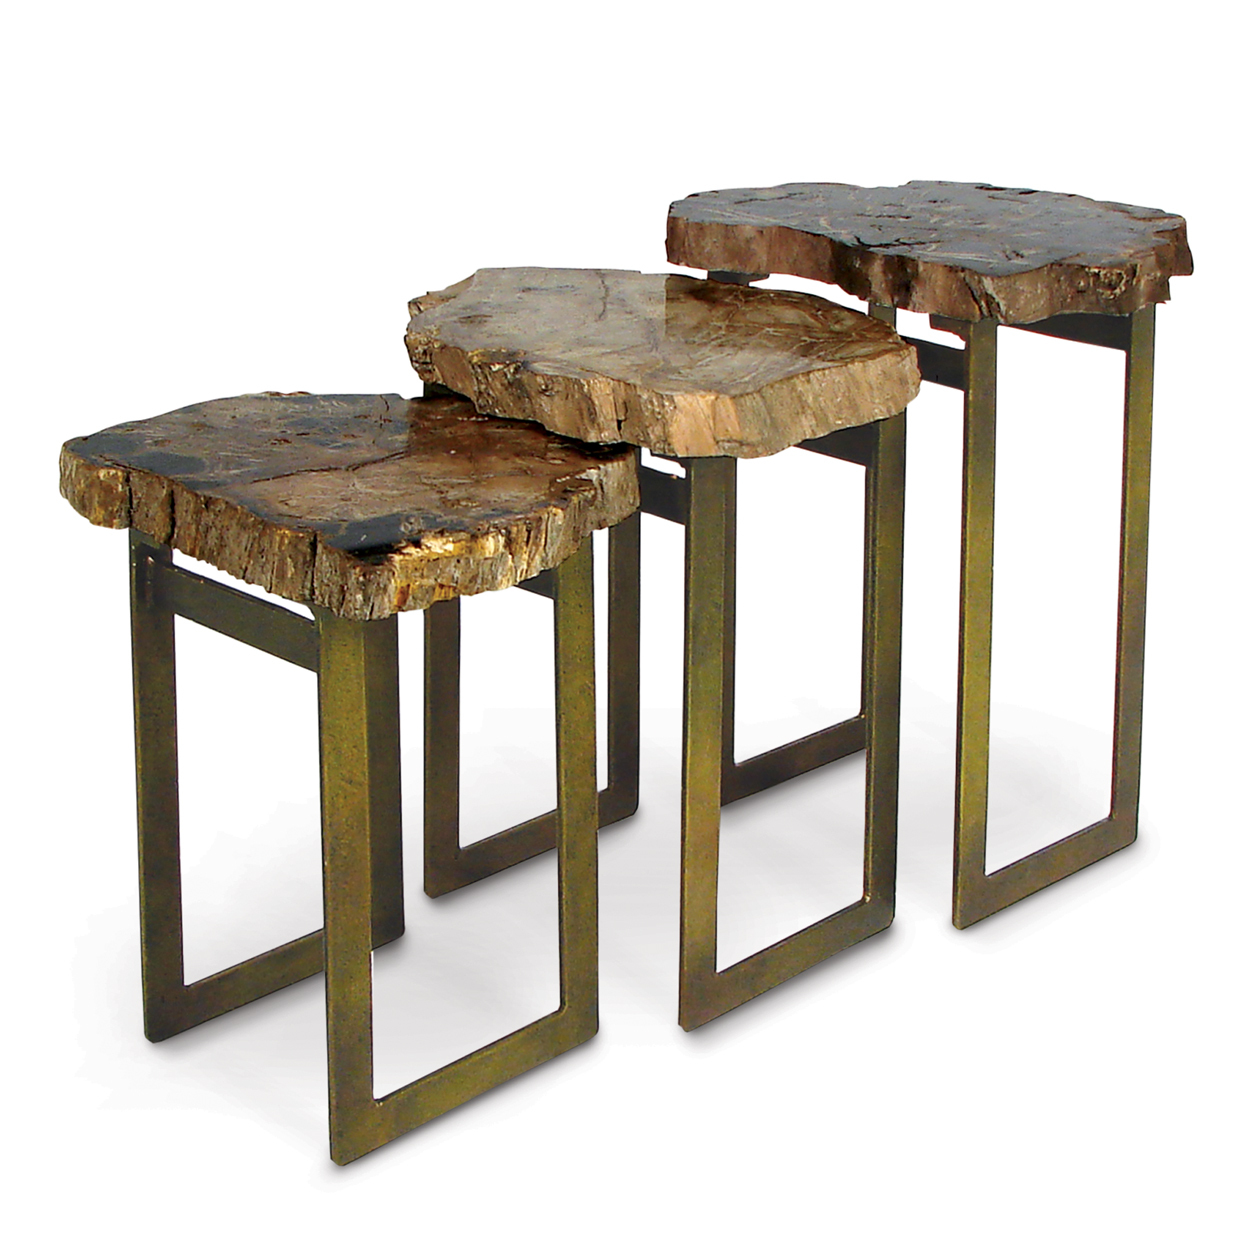 natural wood end table top contemporary side tables accent target winsome curved nightstand ott tray modern furniture reproductions hammered copper pier small chairs for spaces